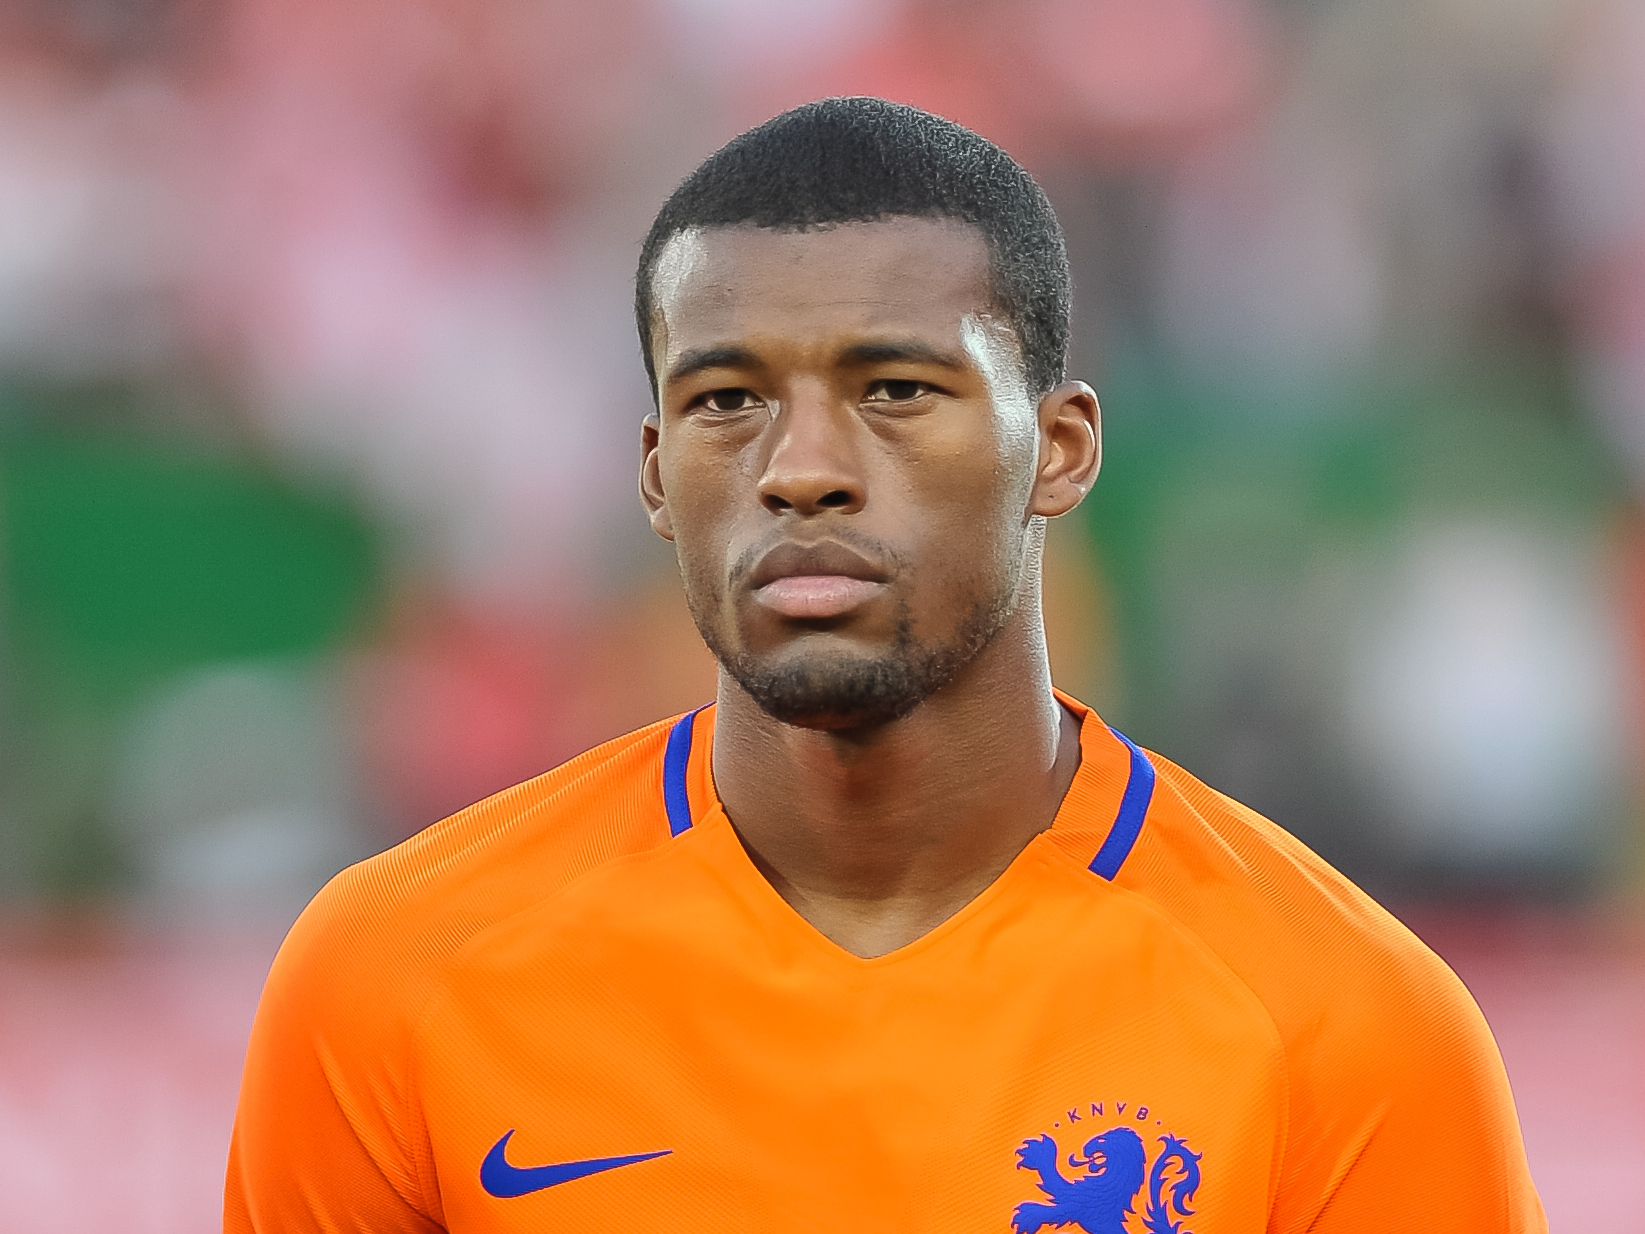 The 28-year old son of father (?) and mother(?) Georginio Wijnaldum in 2019 photo. Georginio Wijnaldum earned a  million dollar salary - leaving the net worth at 3 million in 2019